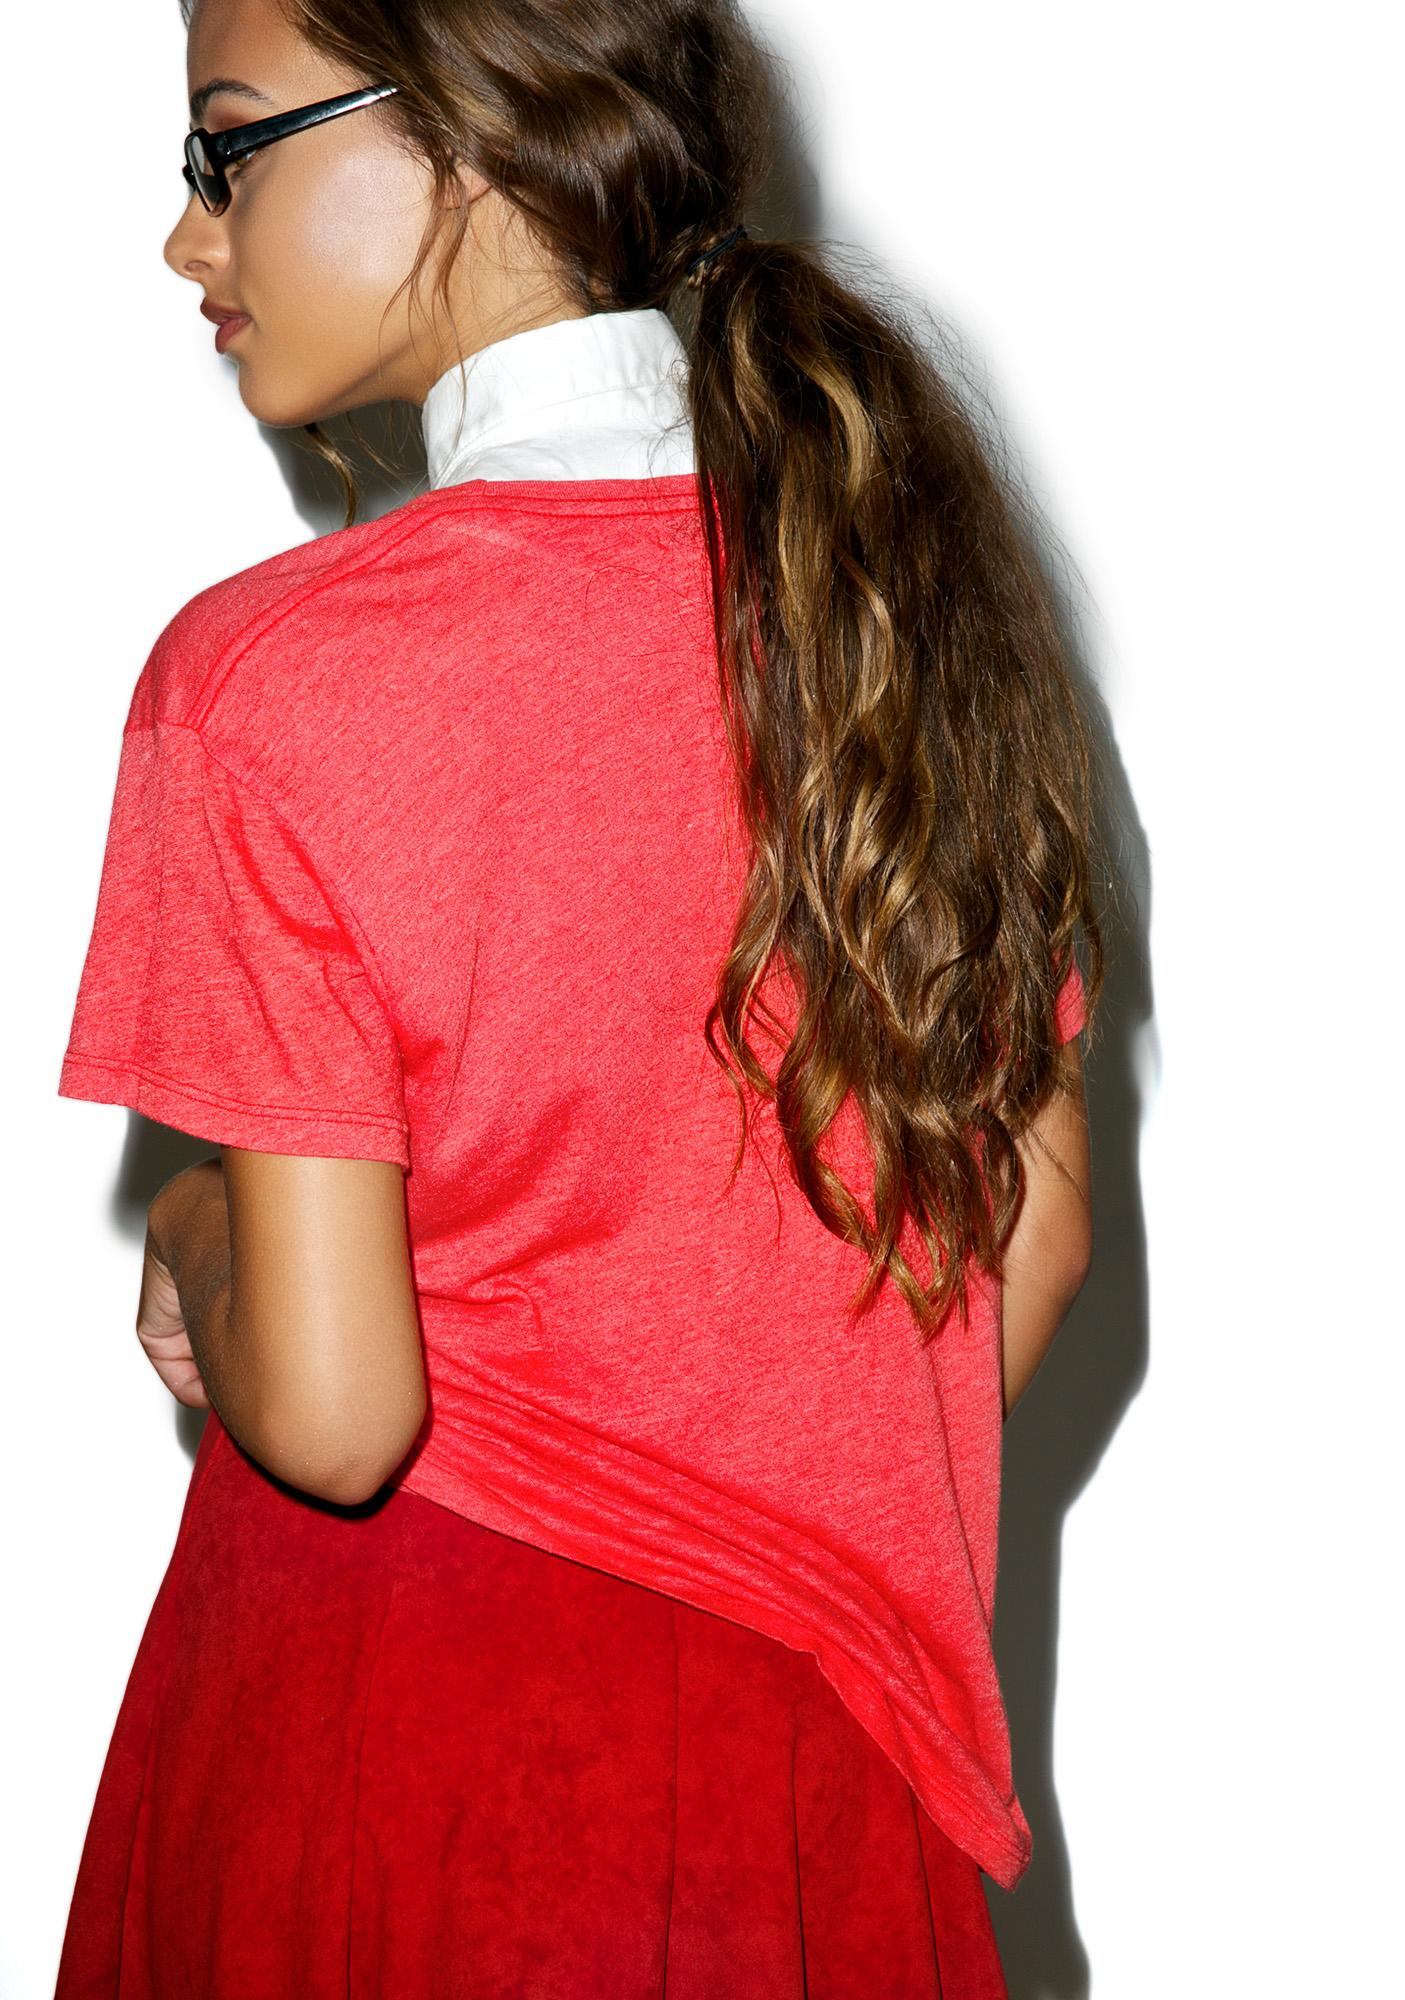 Wildfox Couture First Lady Manchester Tee